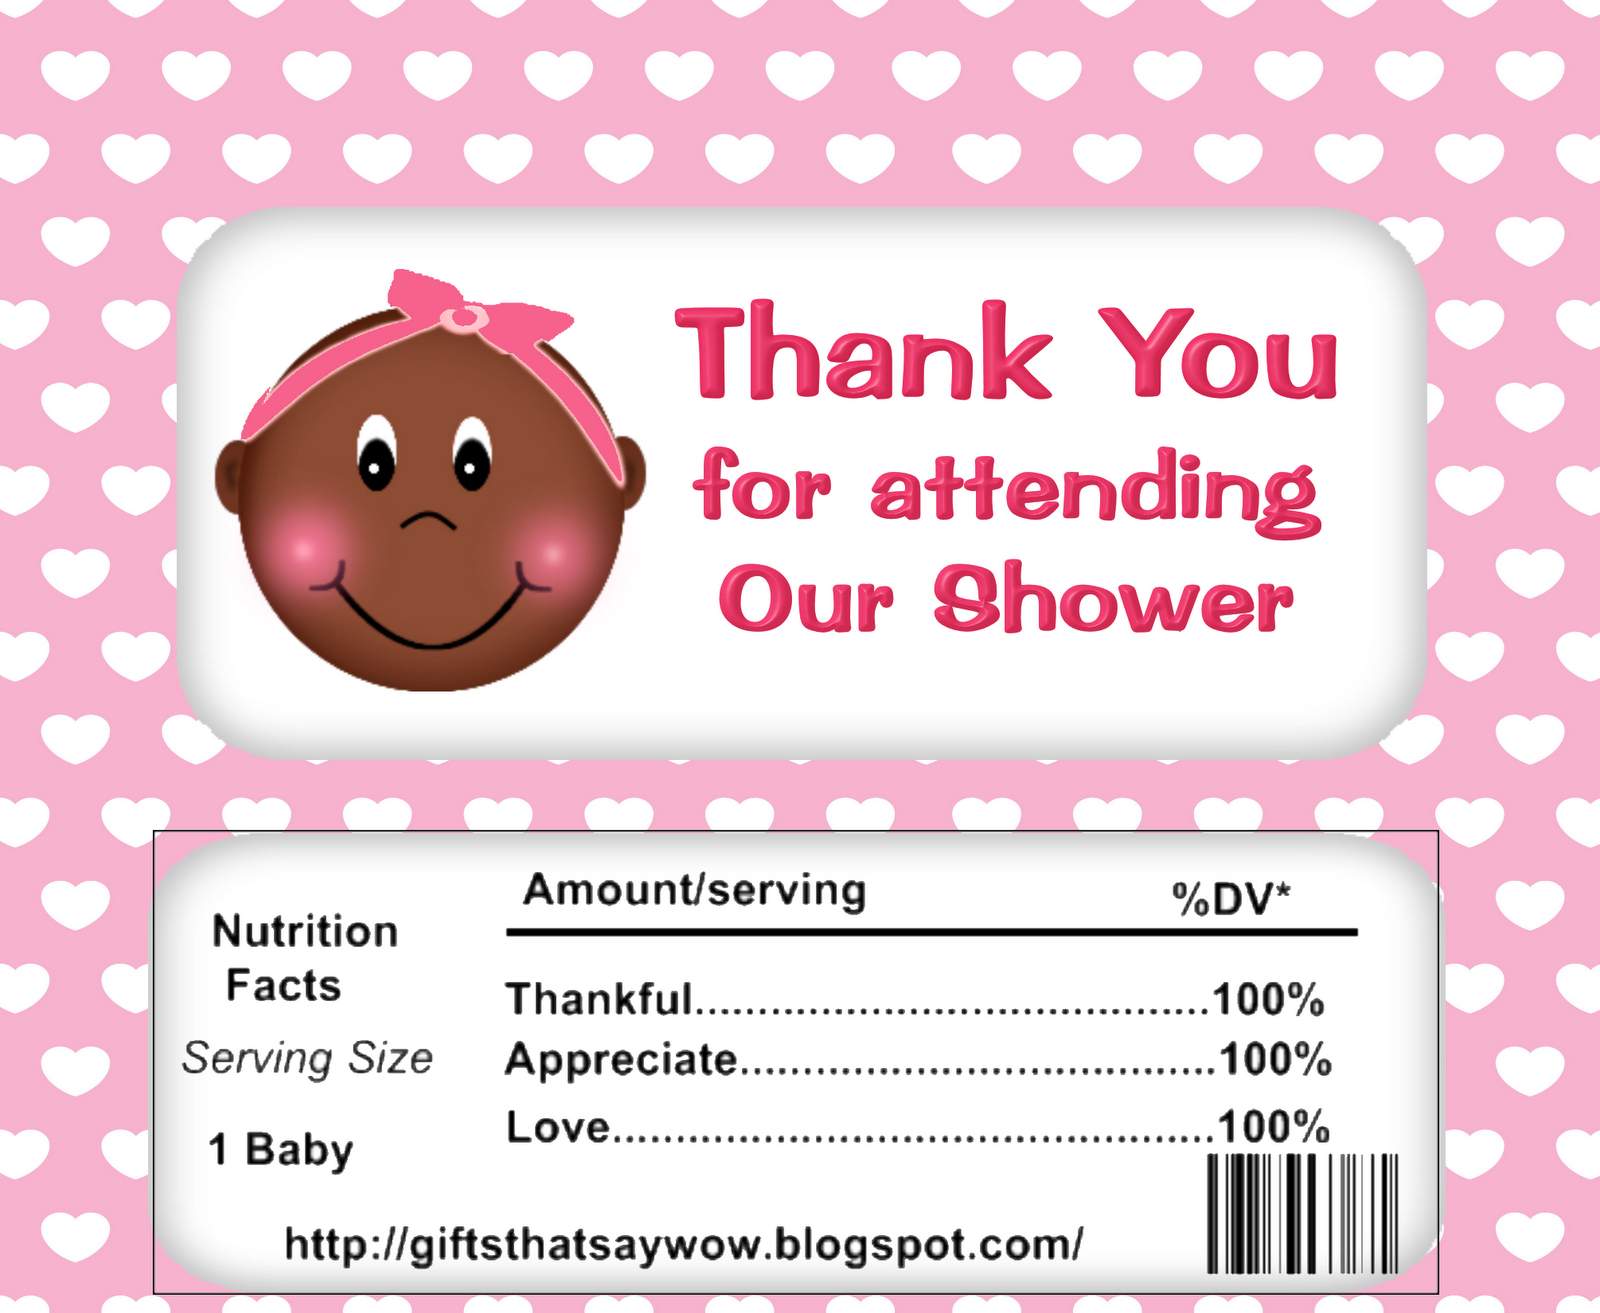 Gifts That Say Wow: Free Printable African American Baby Shower - Candy Bar Baby Shower Game Free Printable